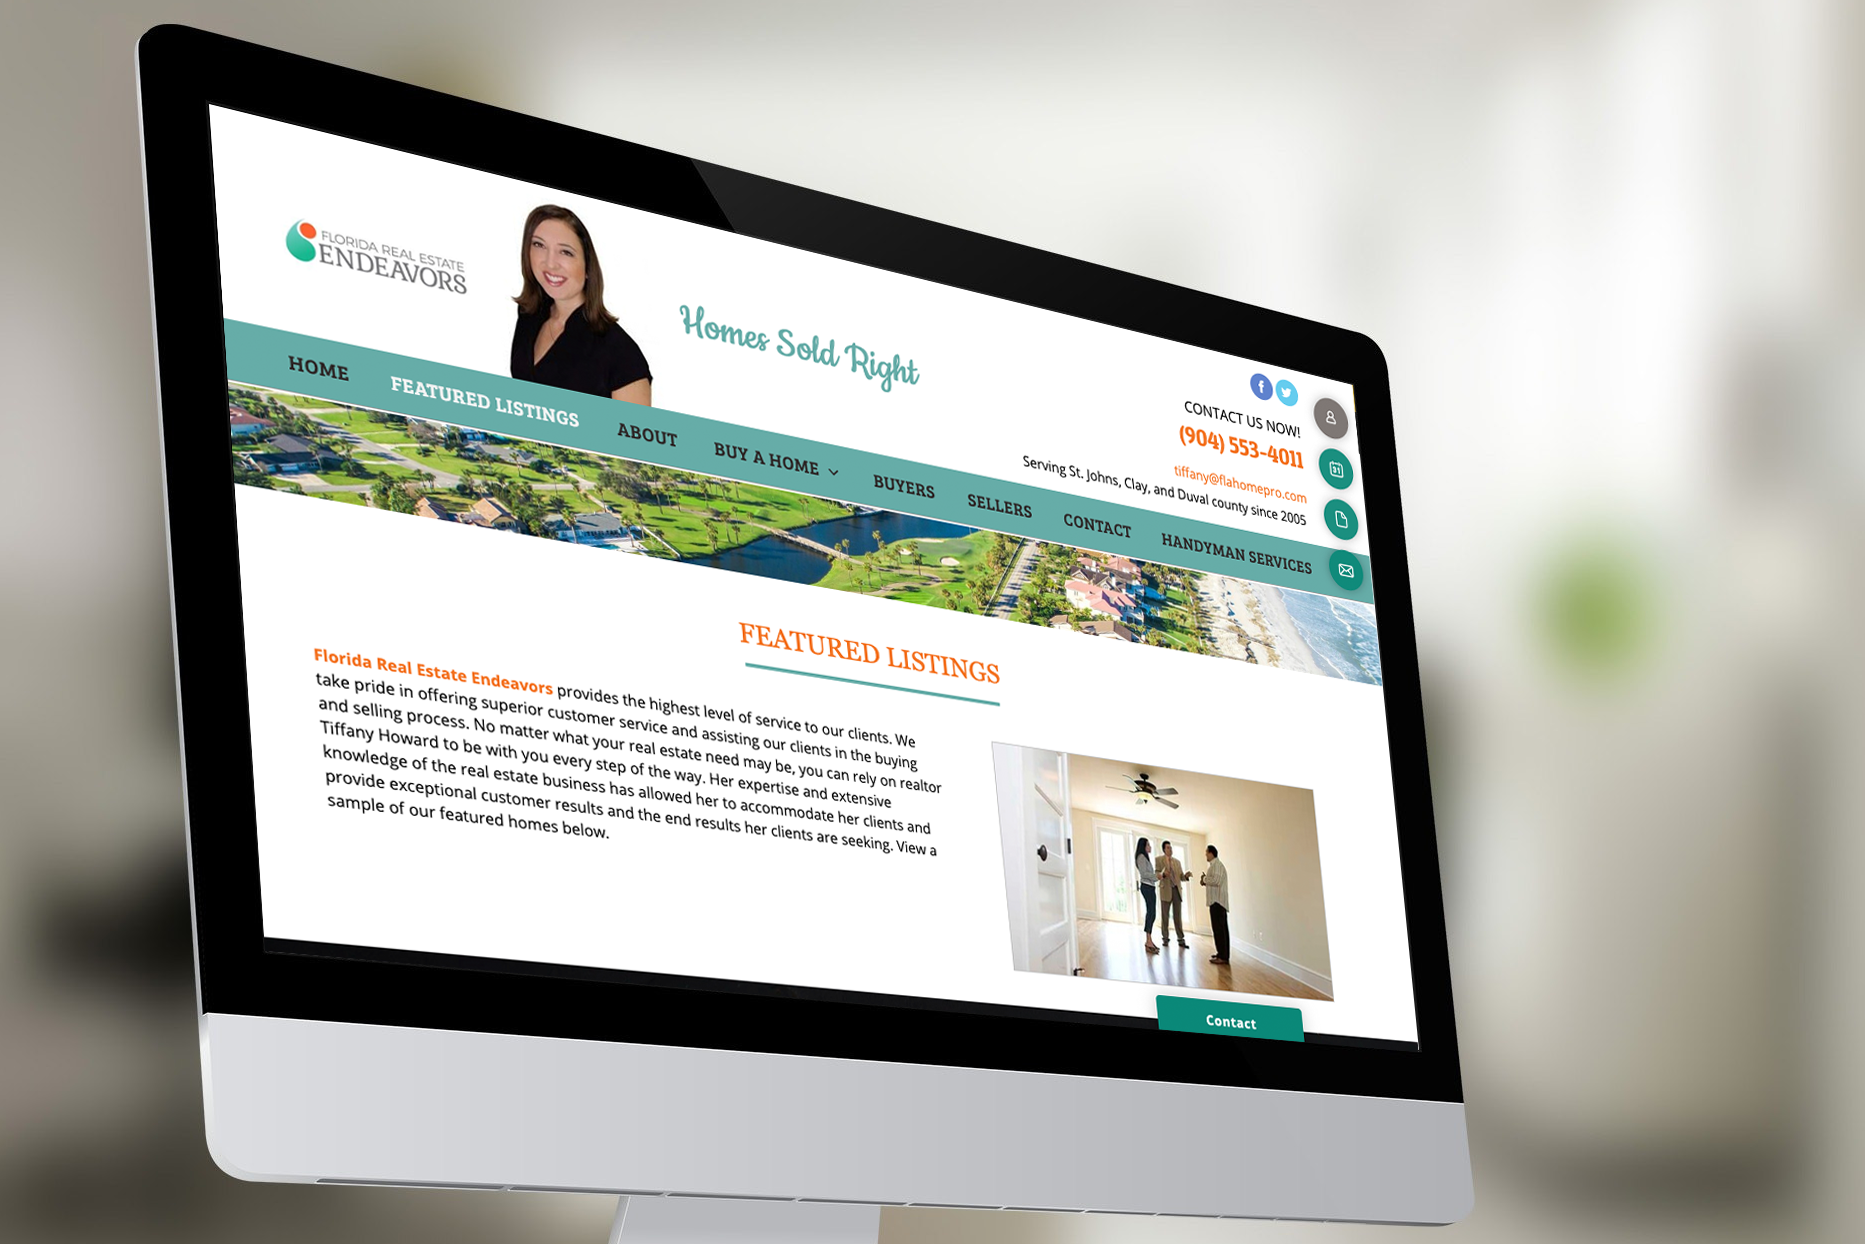 FLA Real Estate Endeavors Website